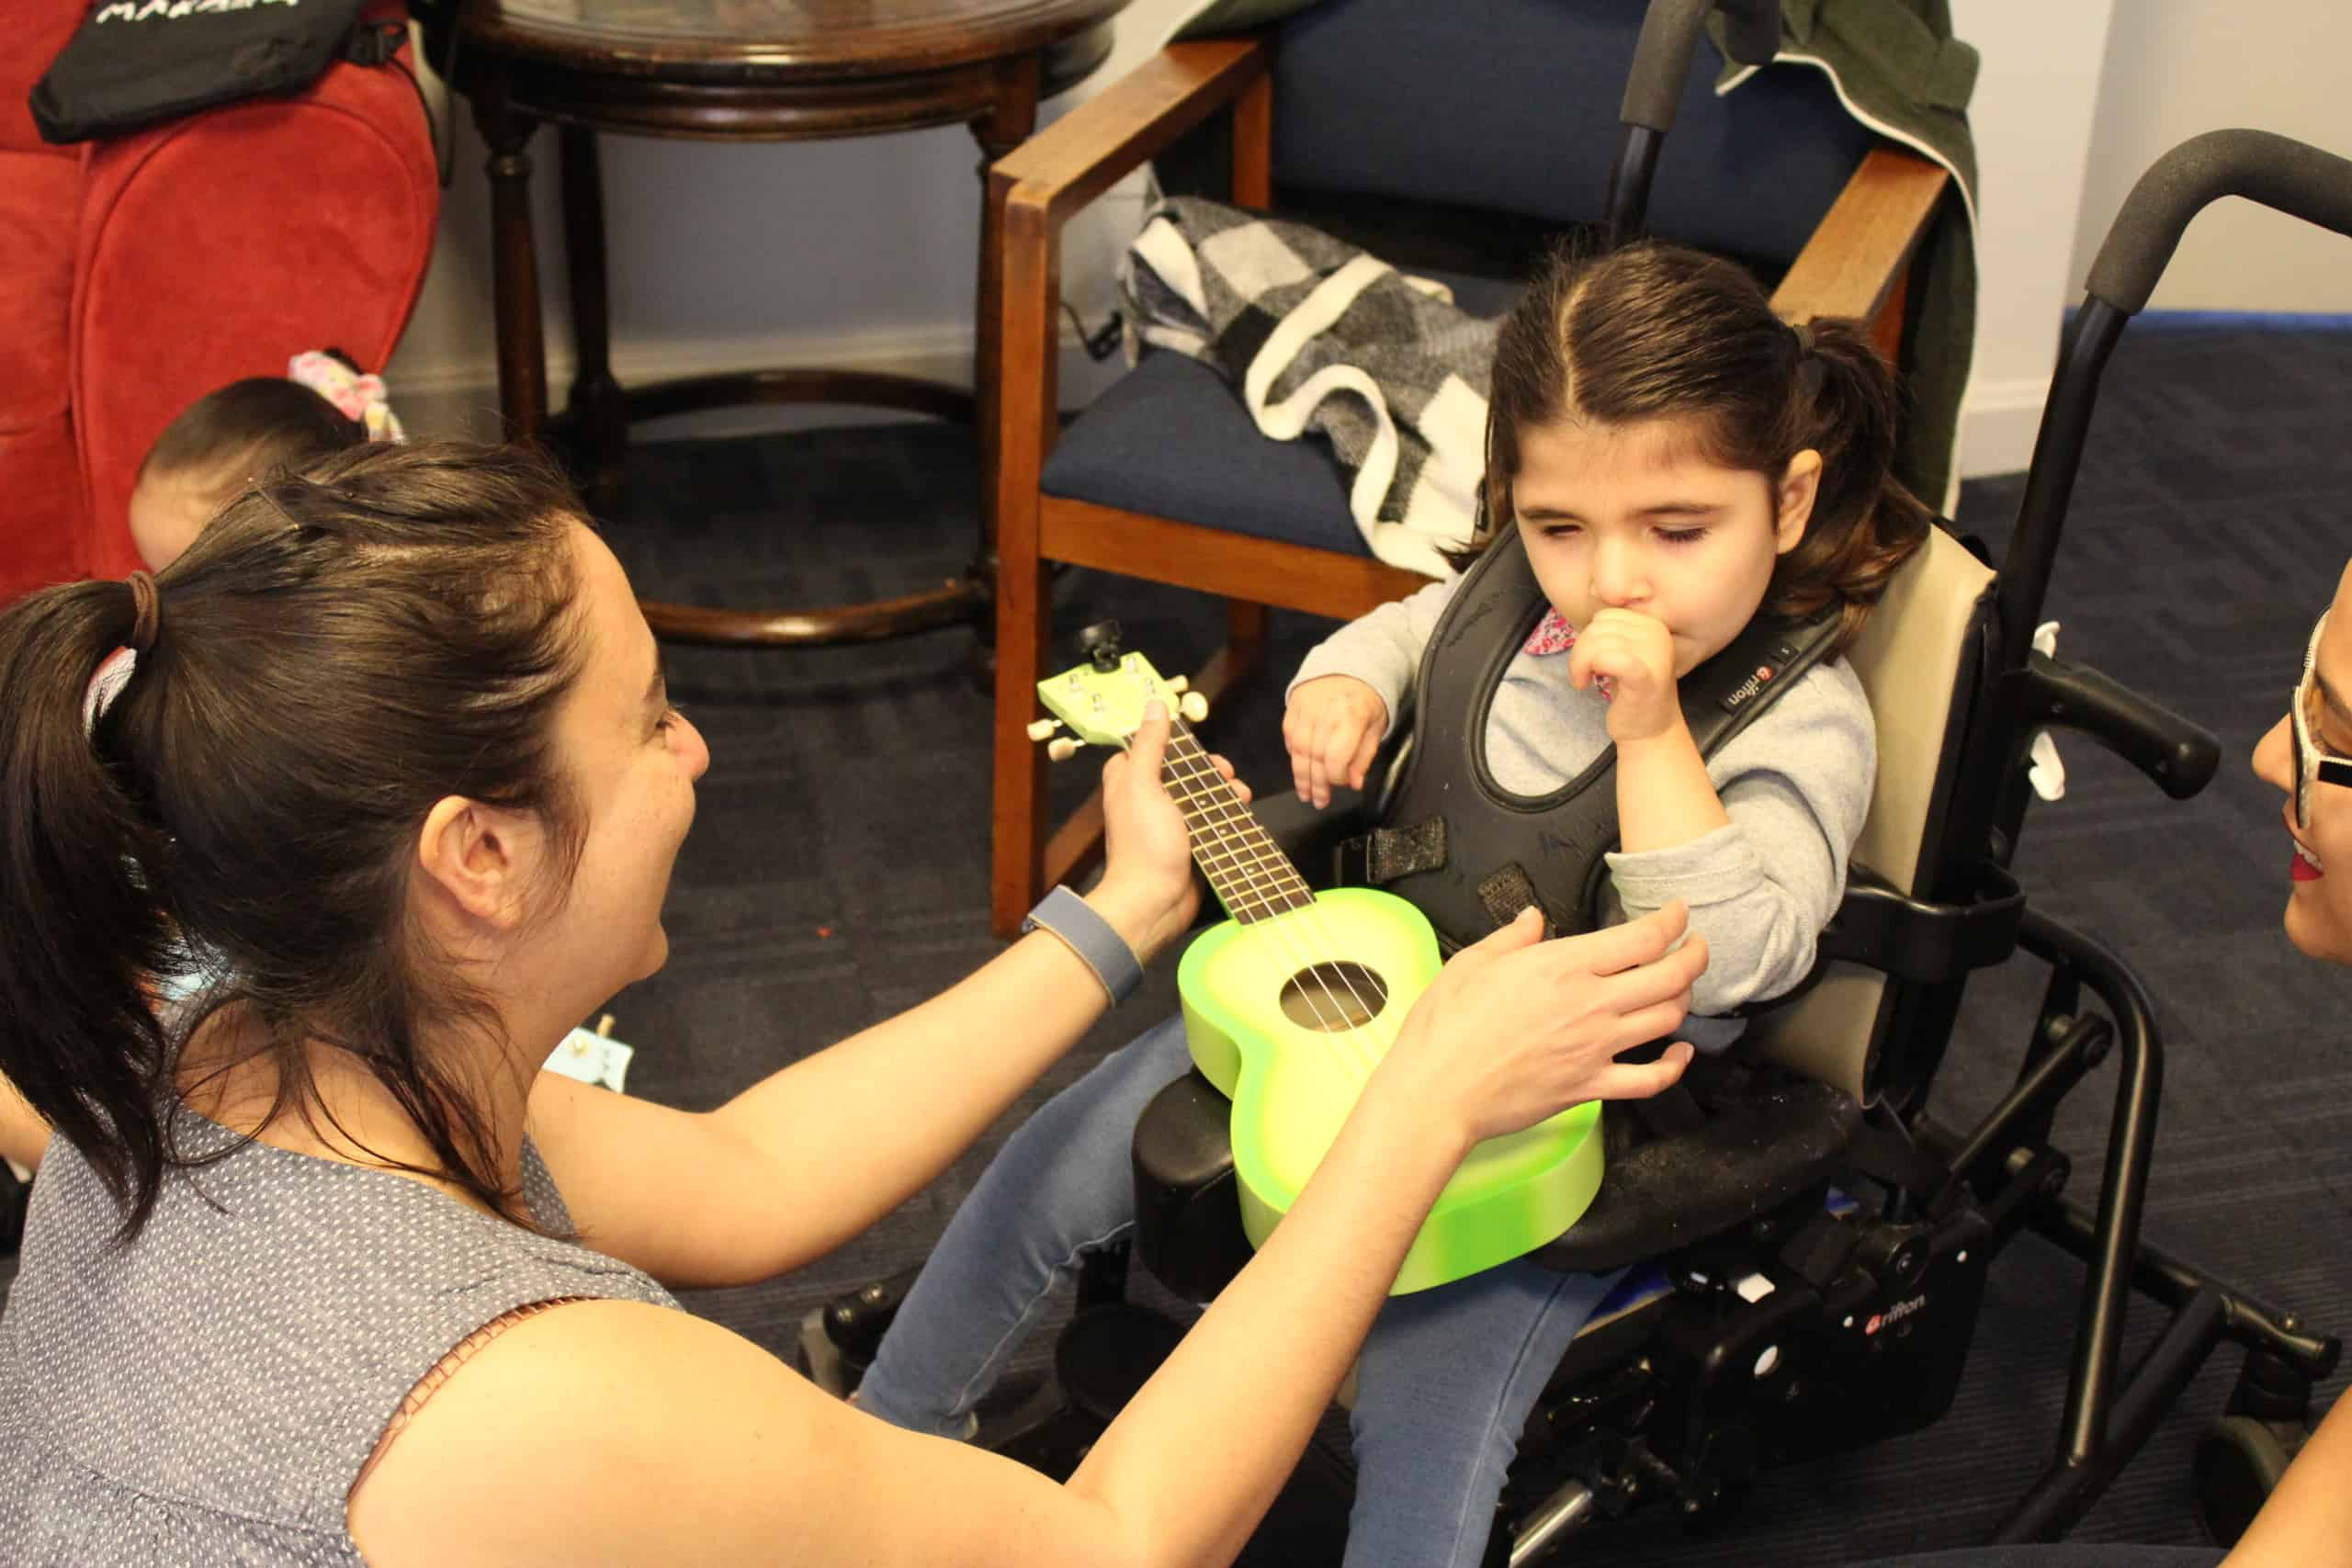 A specialist holds a green ukulele on the lap of a preschool girl in a wheelchair and encourages her to touch it